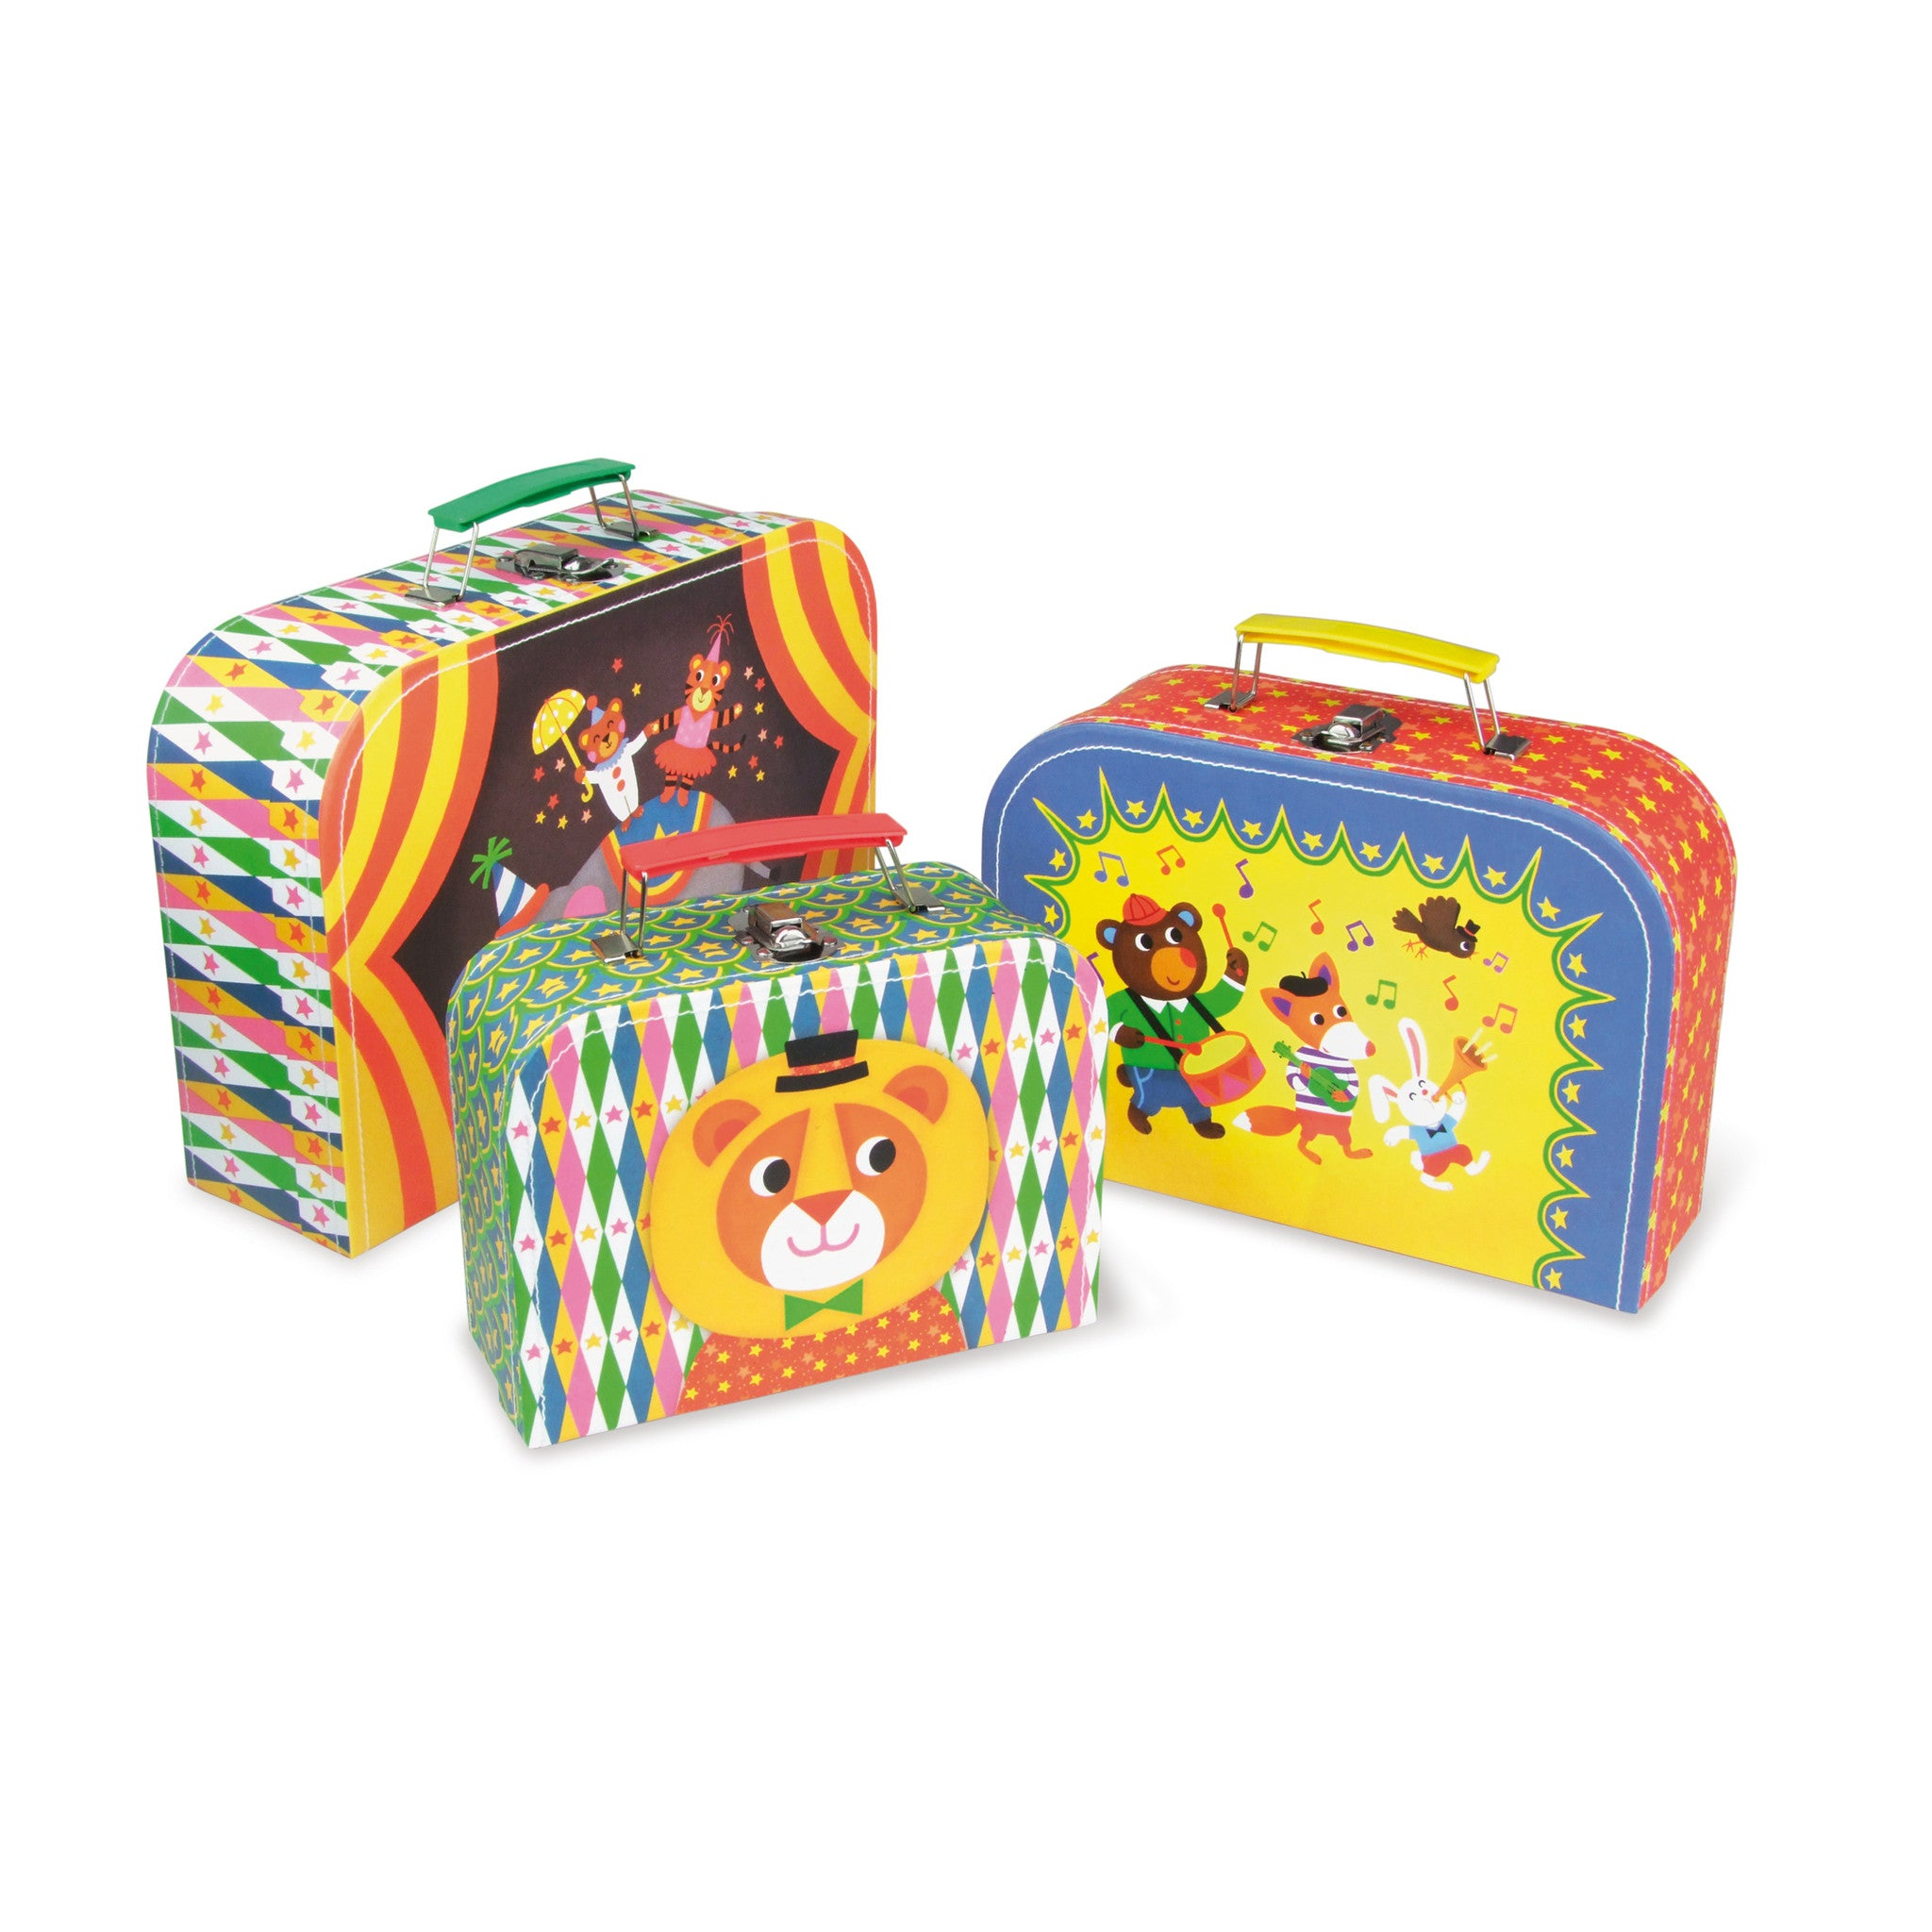 Circus Nesting Storage Cases - Little Citizens Boutique